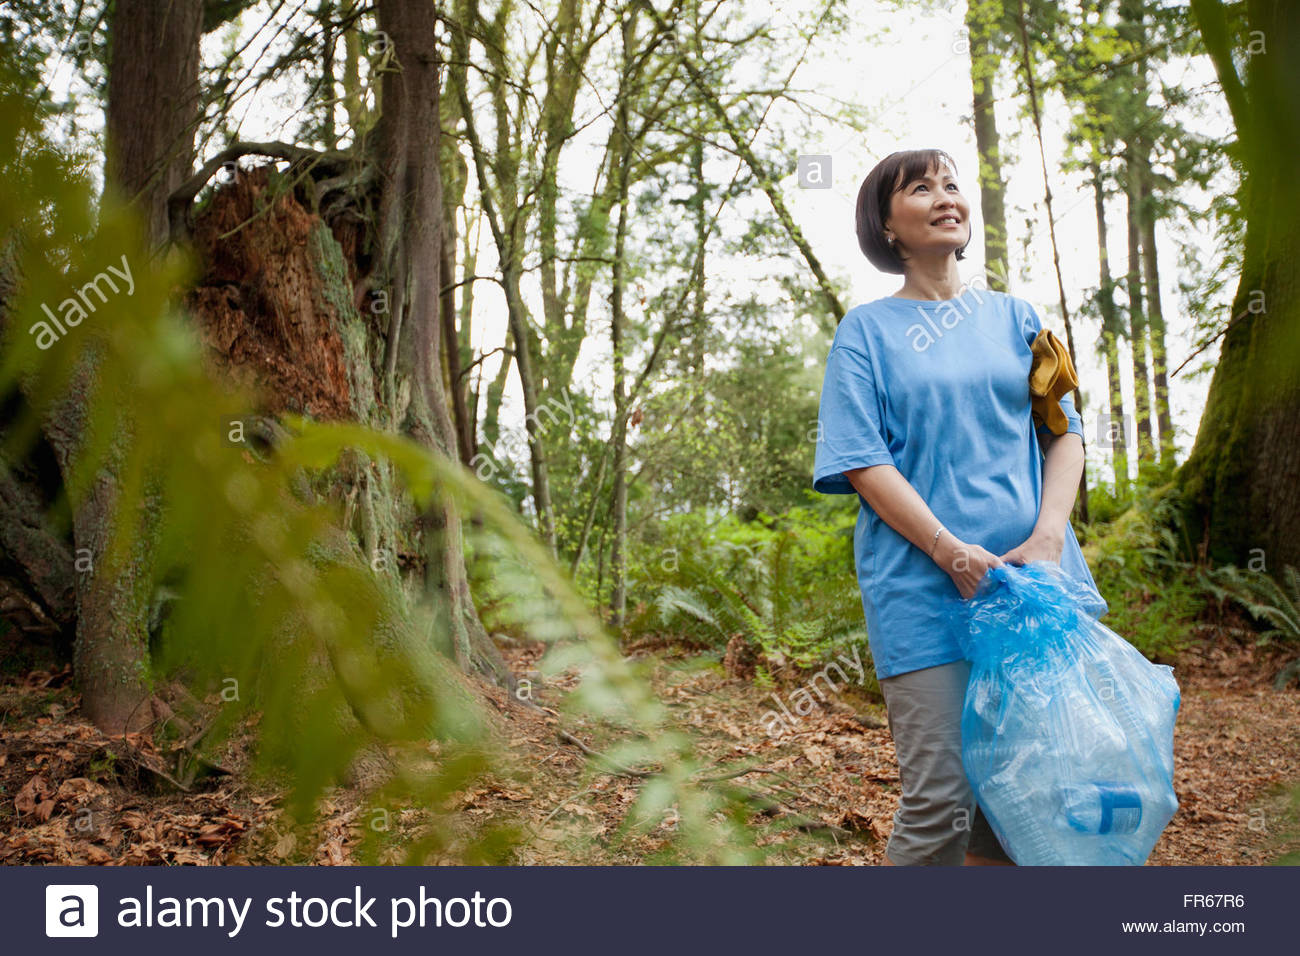 mature woman helping to clean up park - Stock Image